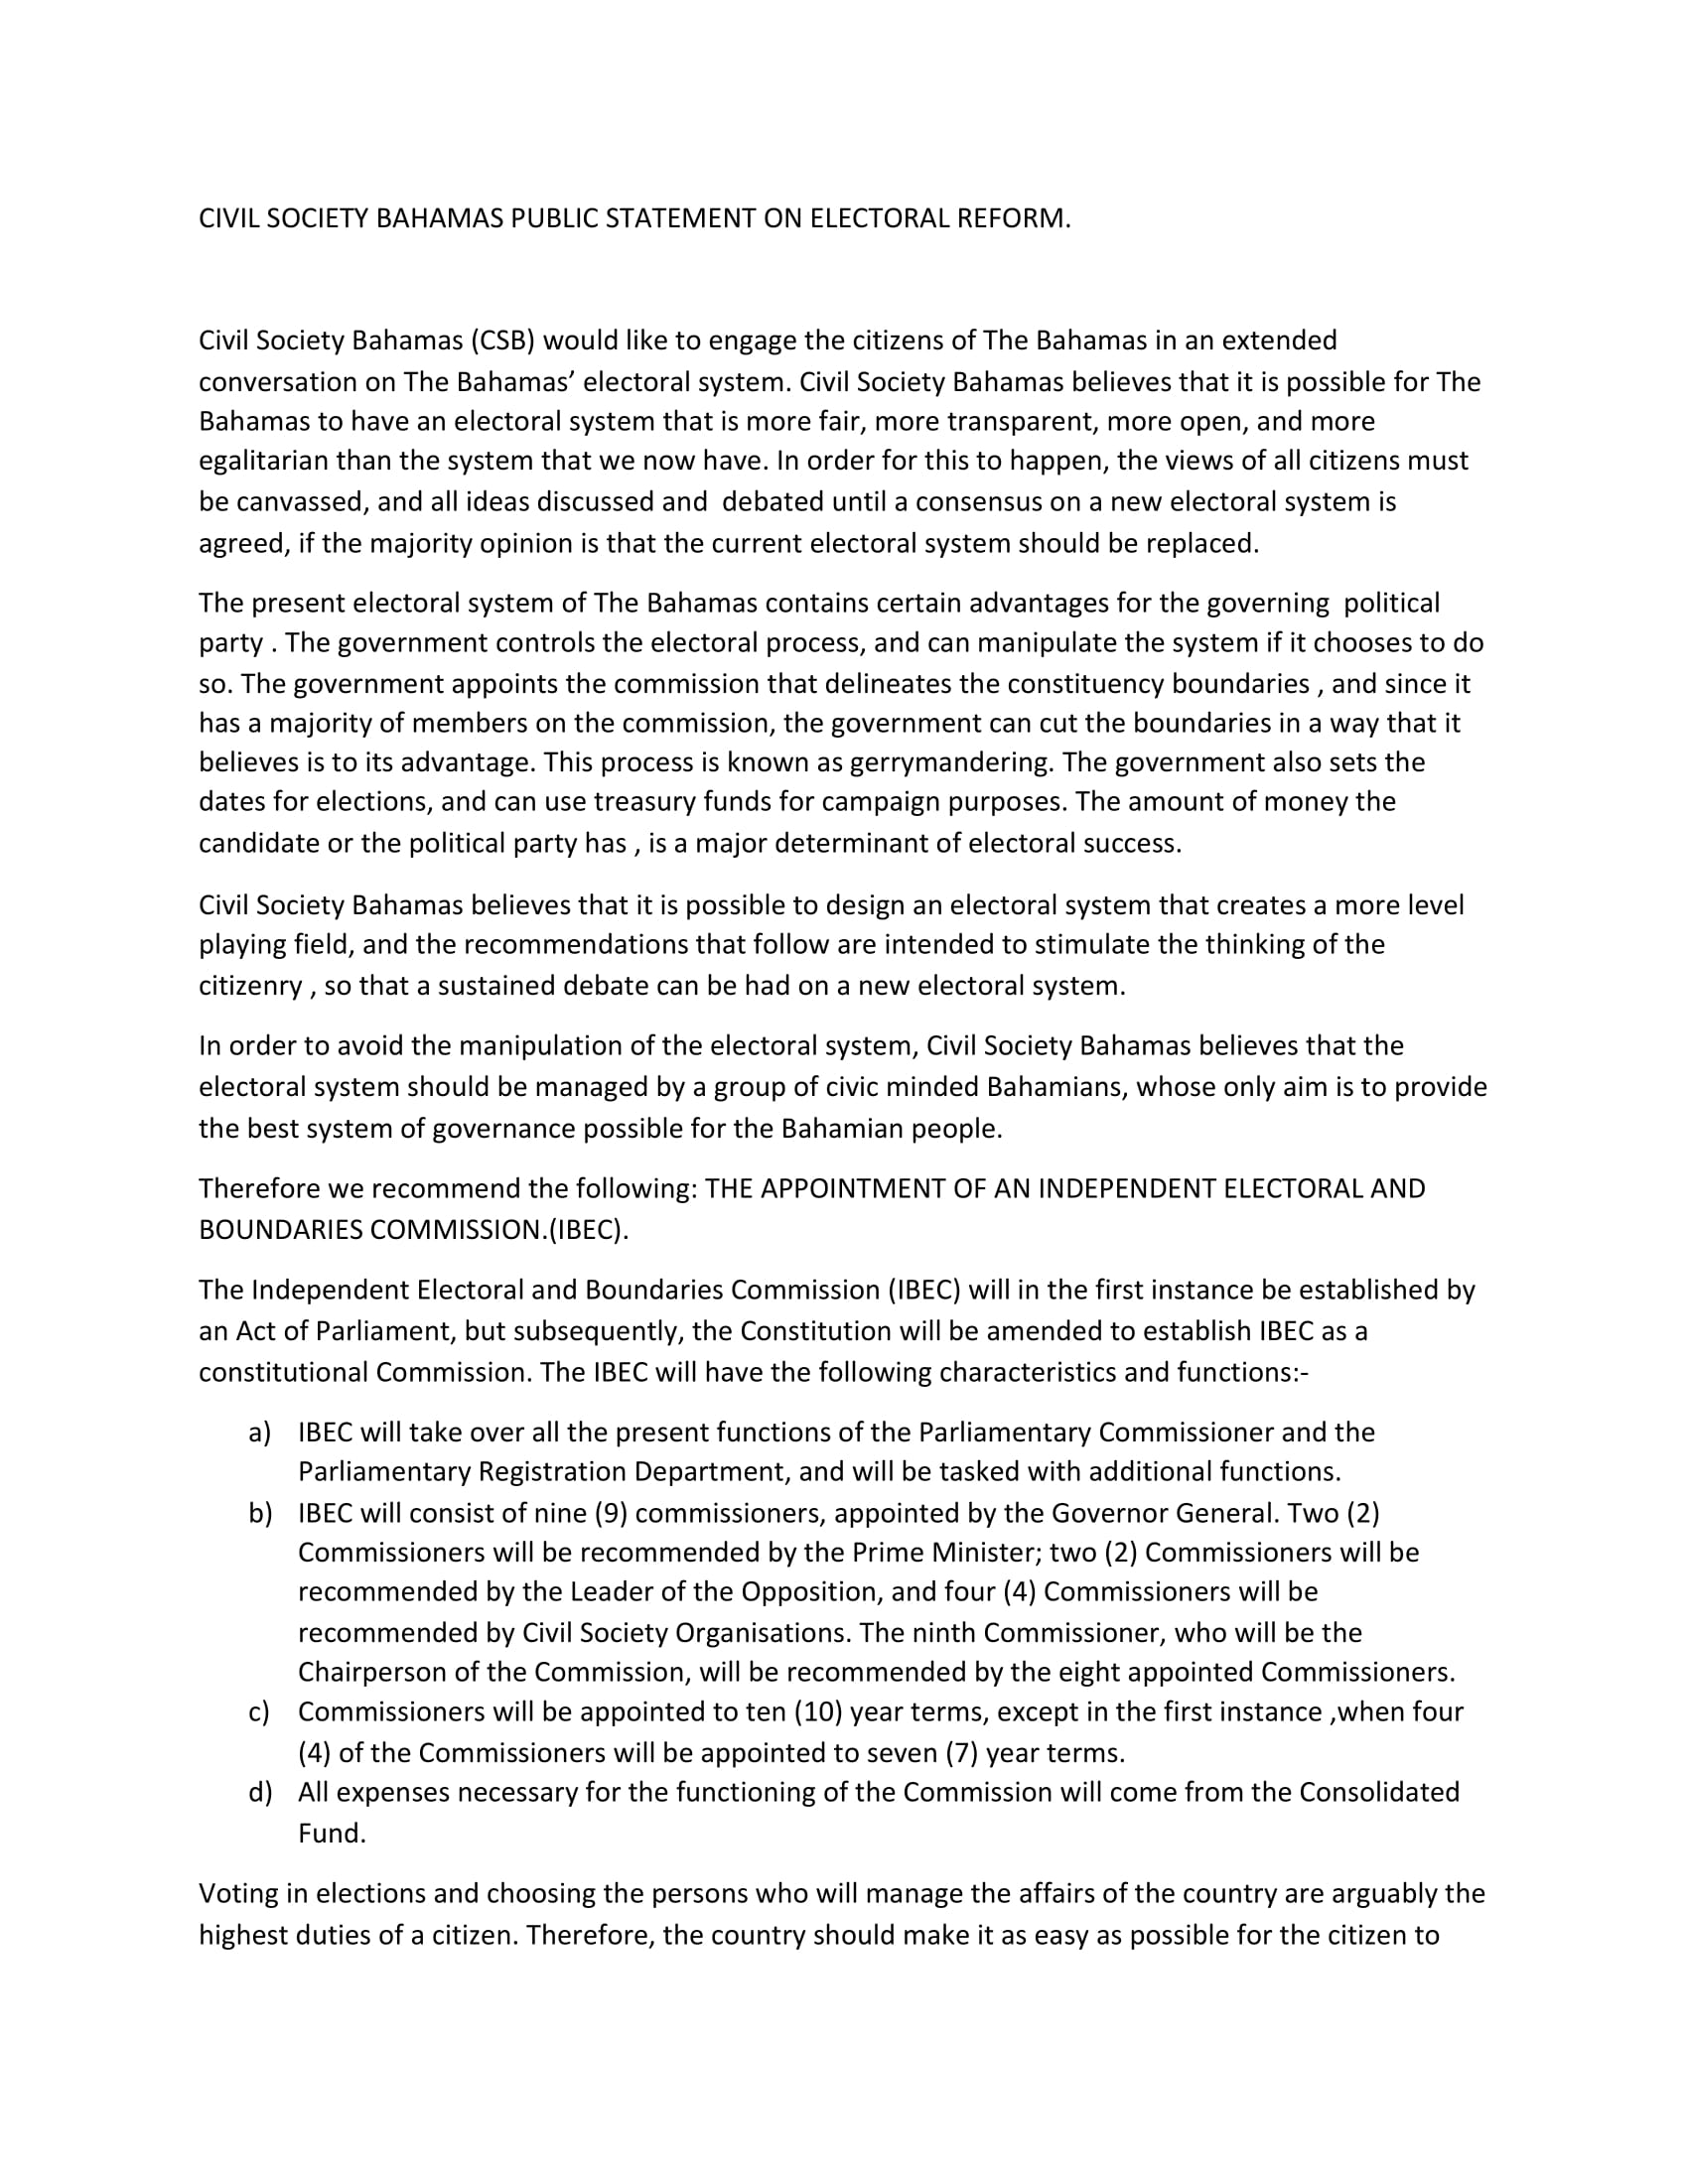 PUBLIC STATEMENT ON ELECTORAL REFORM-1